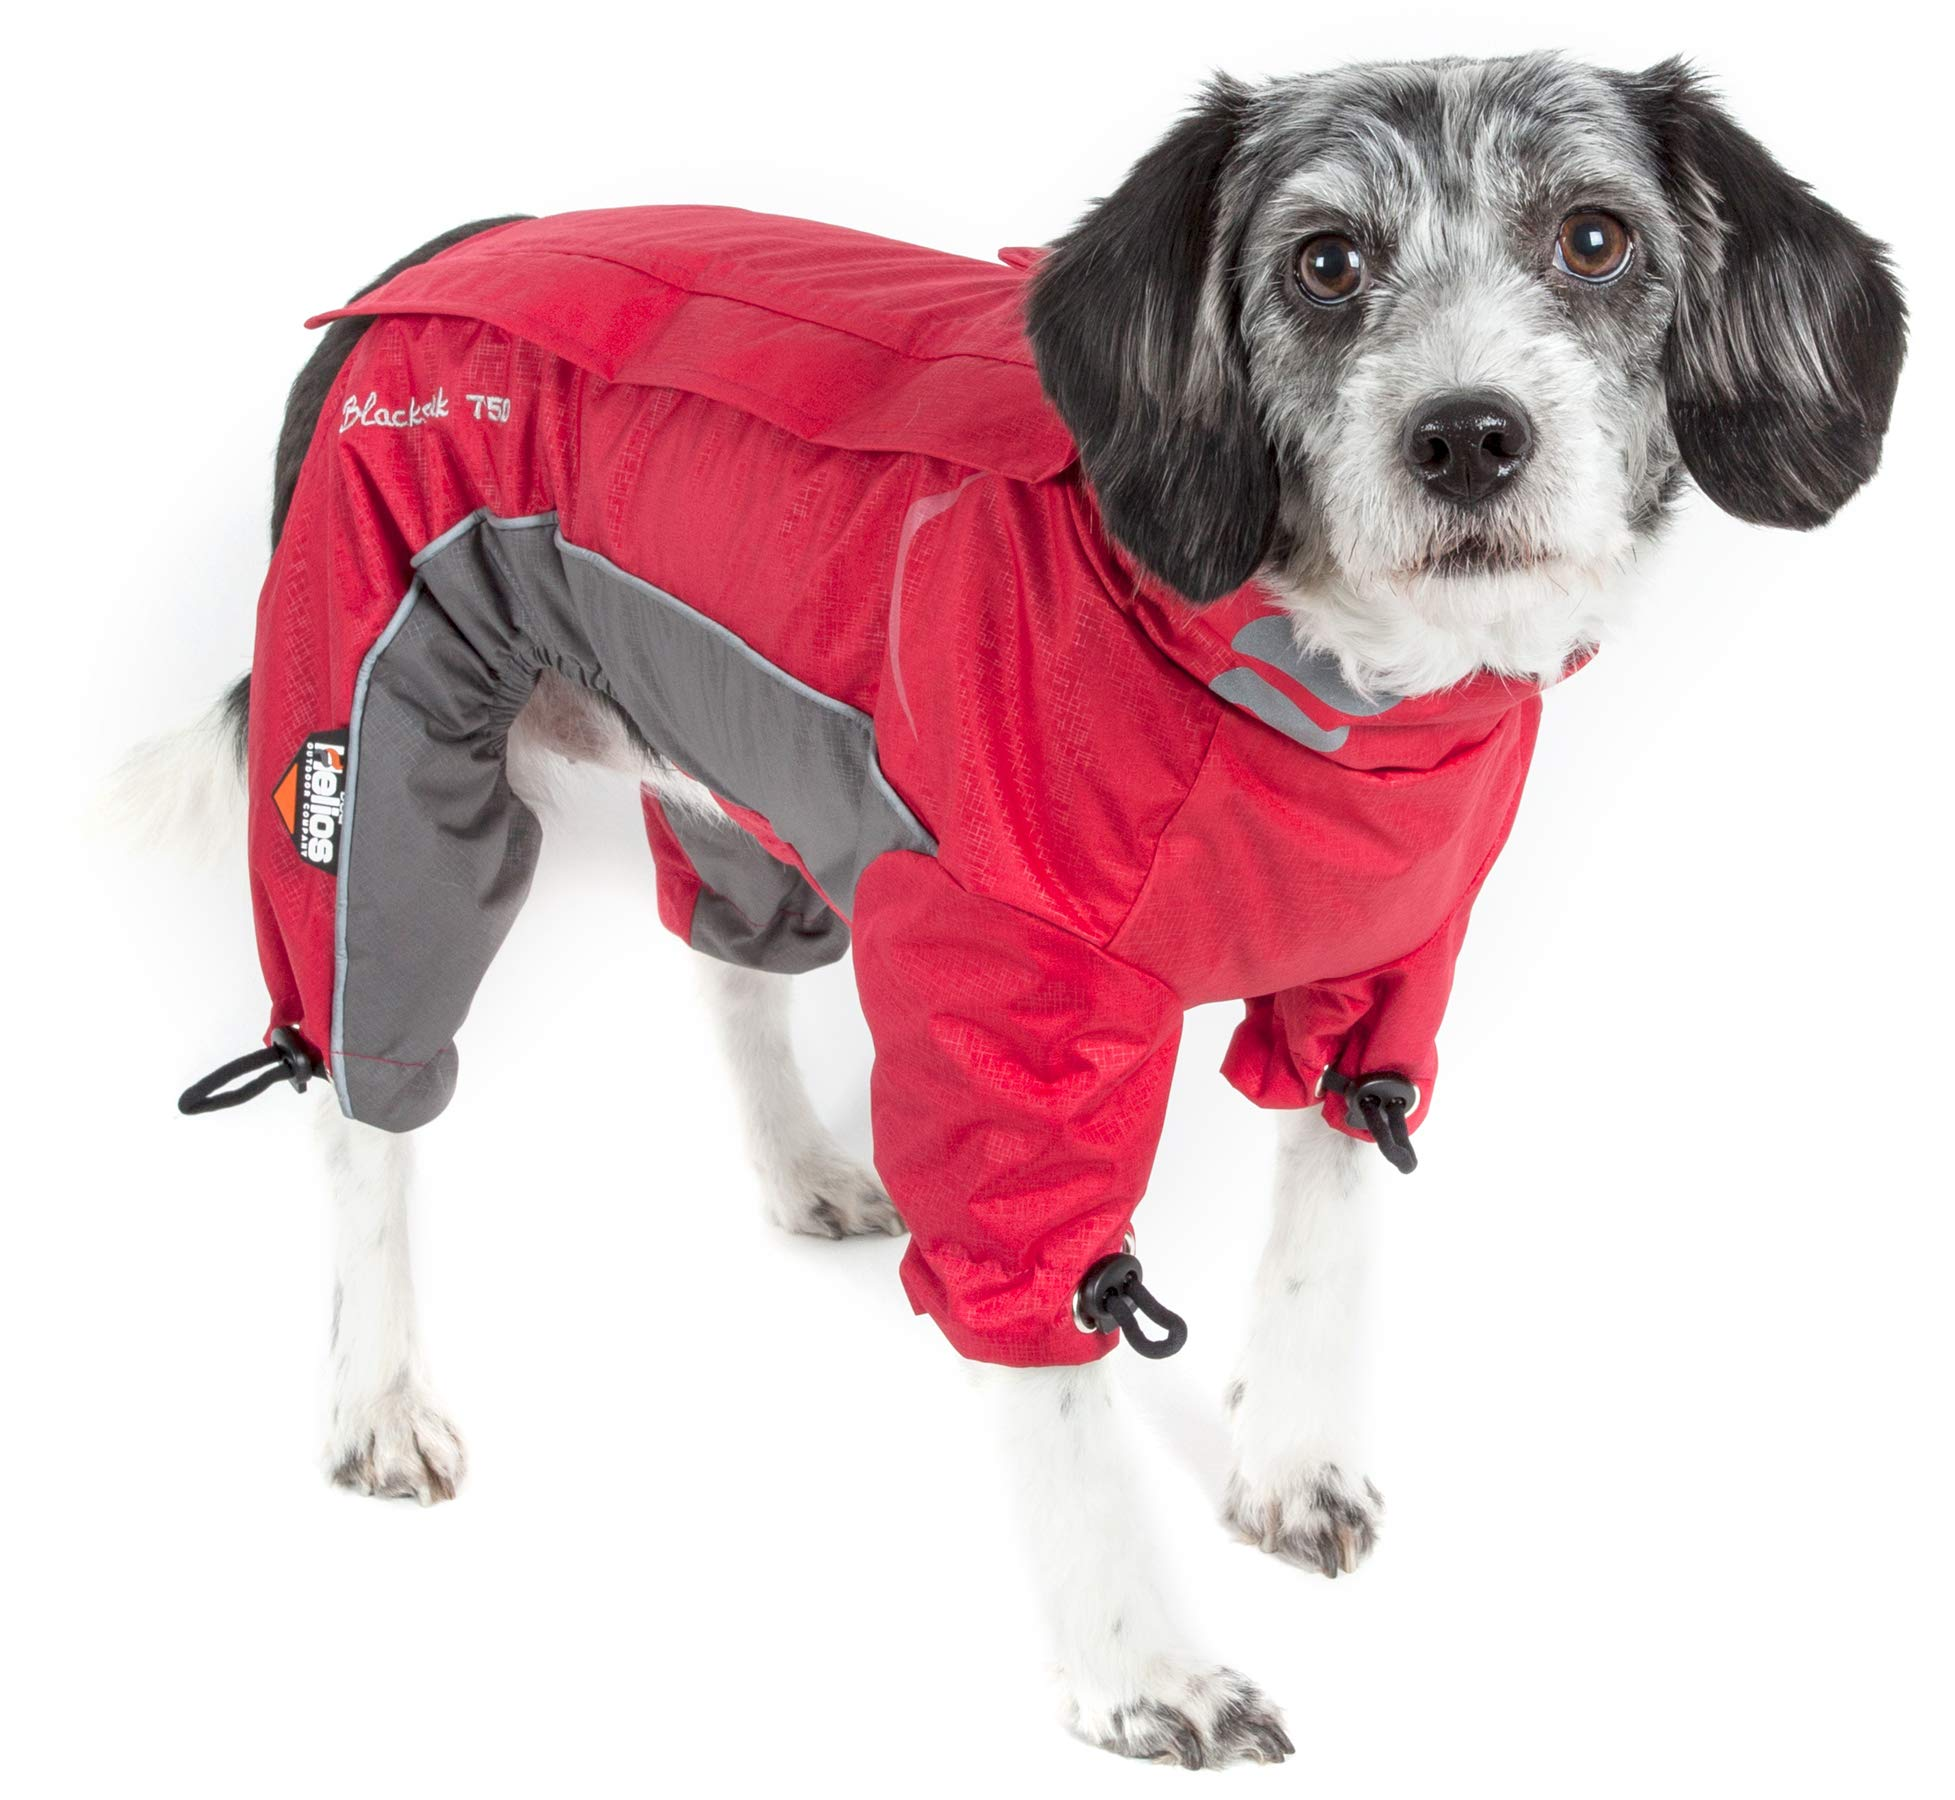 DogHelios Blizzard' Full-Bodied Comfort-Fitted Adjustable and 3M Reflective Winter Insulated Pet Dog Coat Jacket w/Blackshark Technology, Large, Cola Red